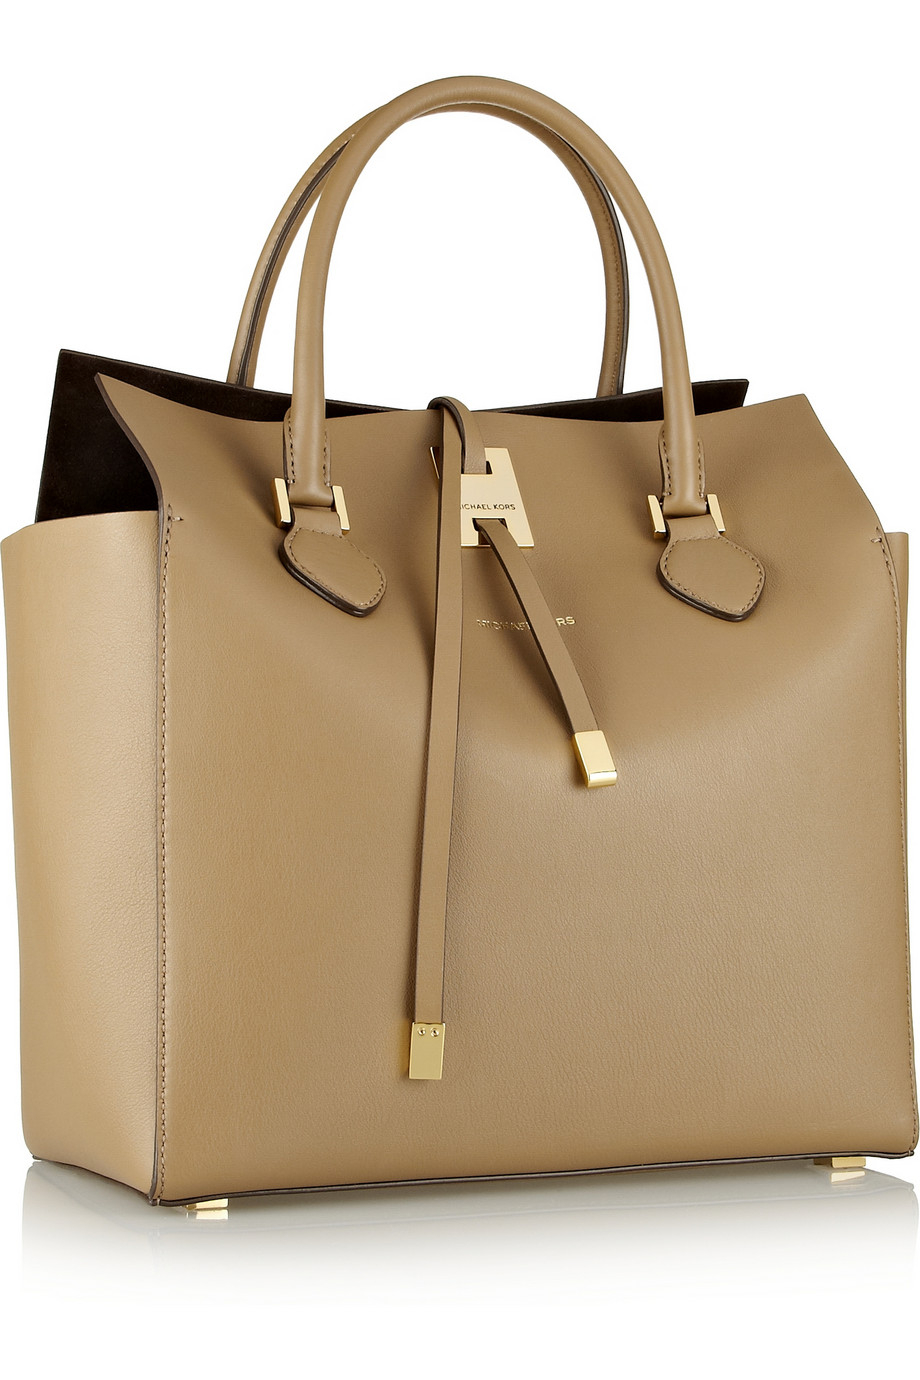 0c03d31a16c5 ... ireland lyst michael kors miranda large leather tote in natural c24f9  9e552